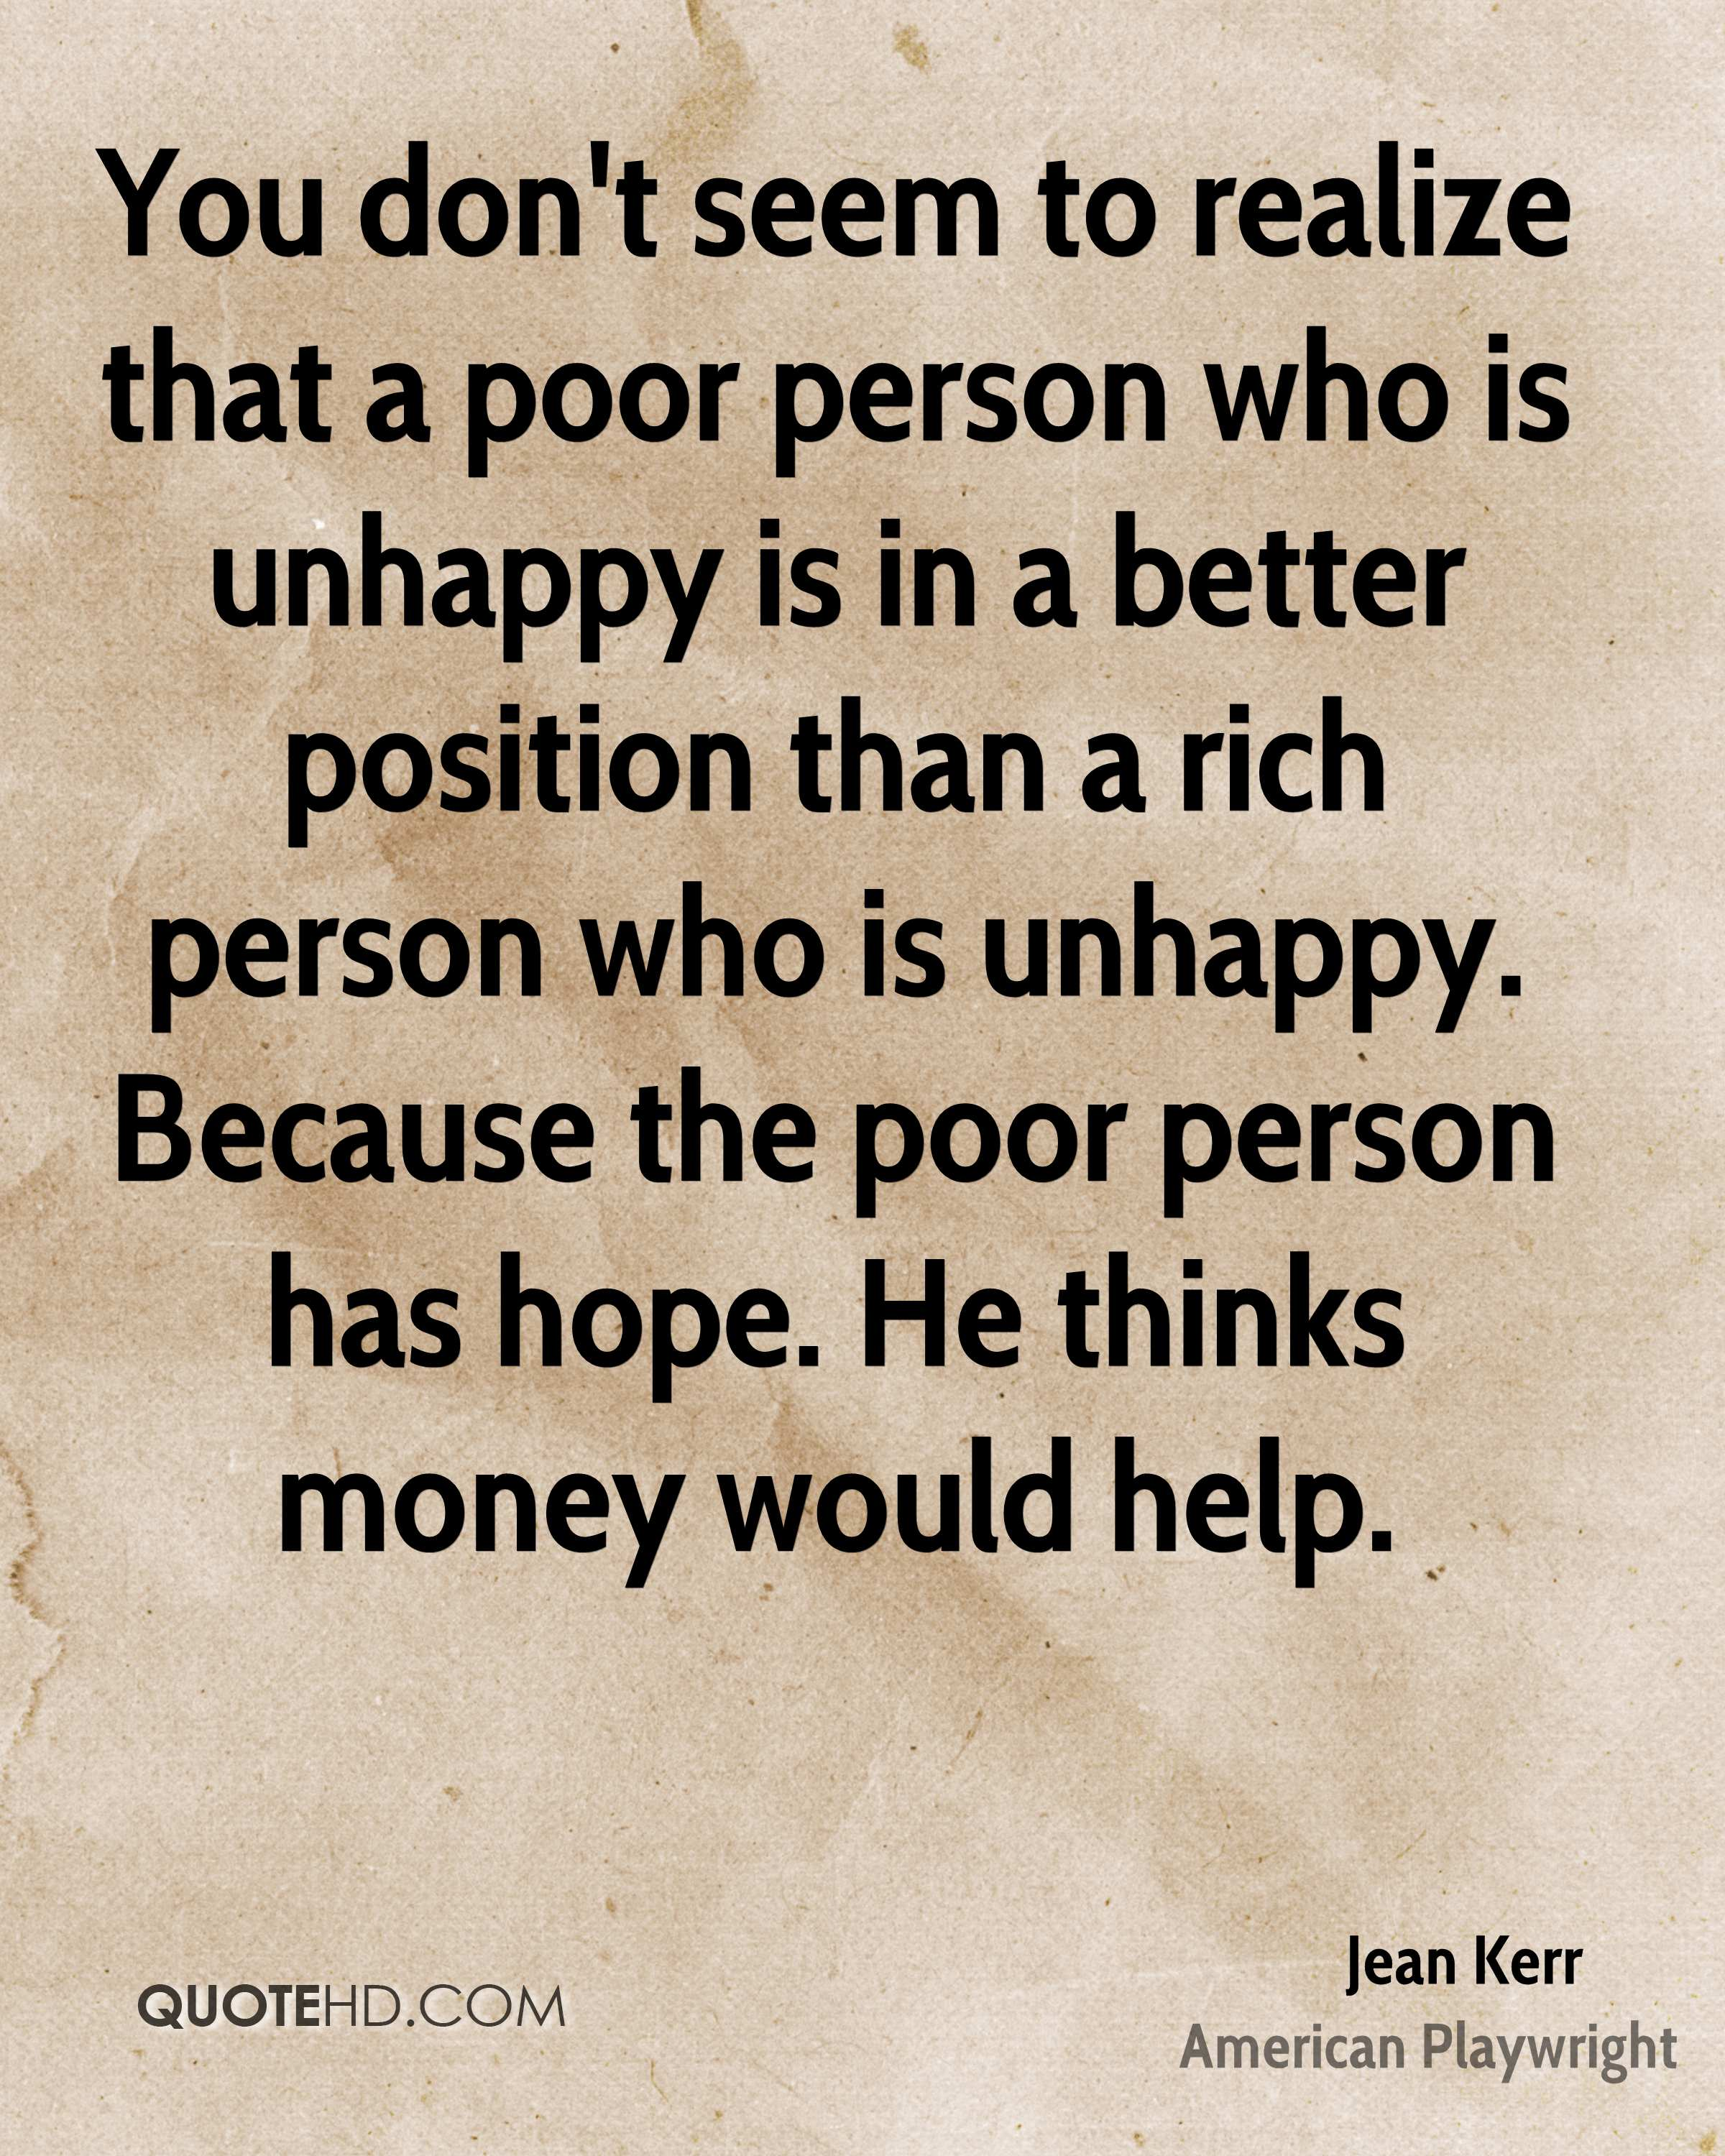 You don't seem to realize that a poor person who is unhappy is in a better position than a rich person who is unhappy. Because the poor person has hope. He thinks money would help.